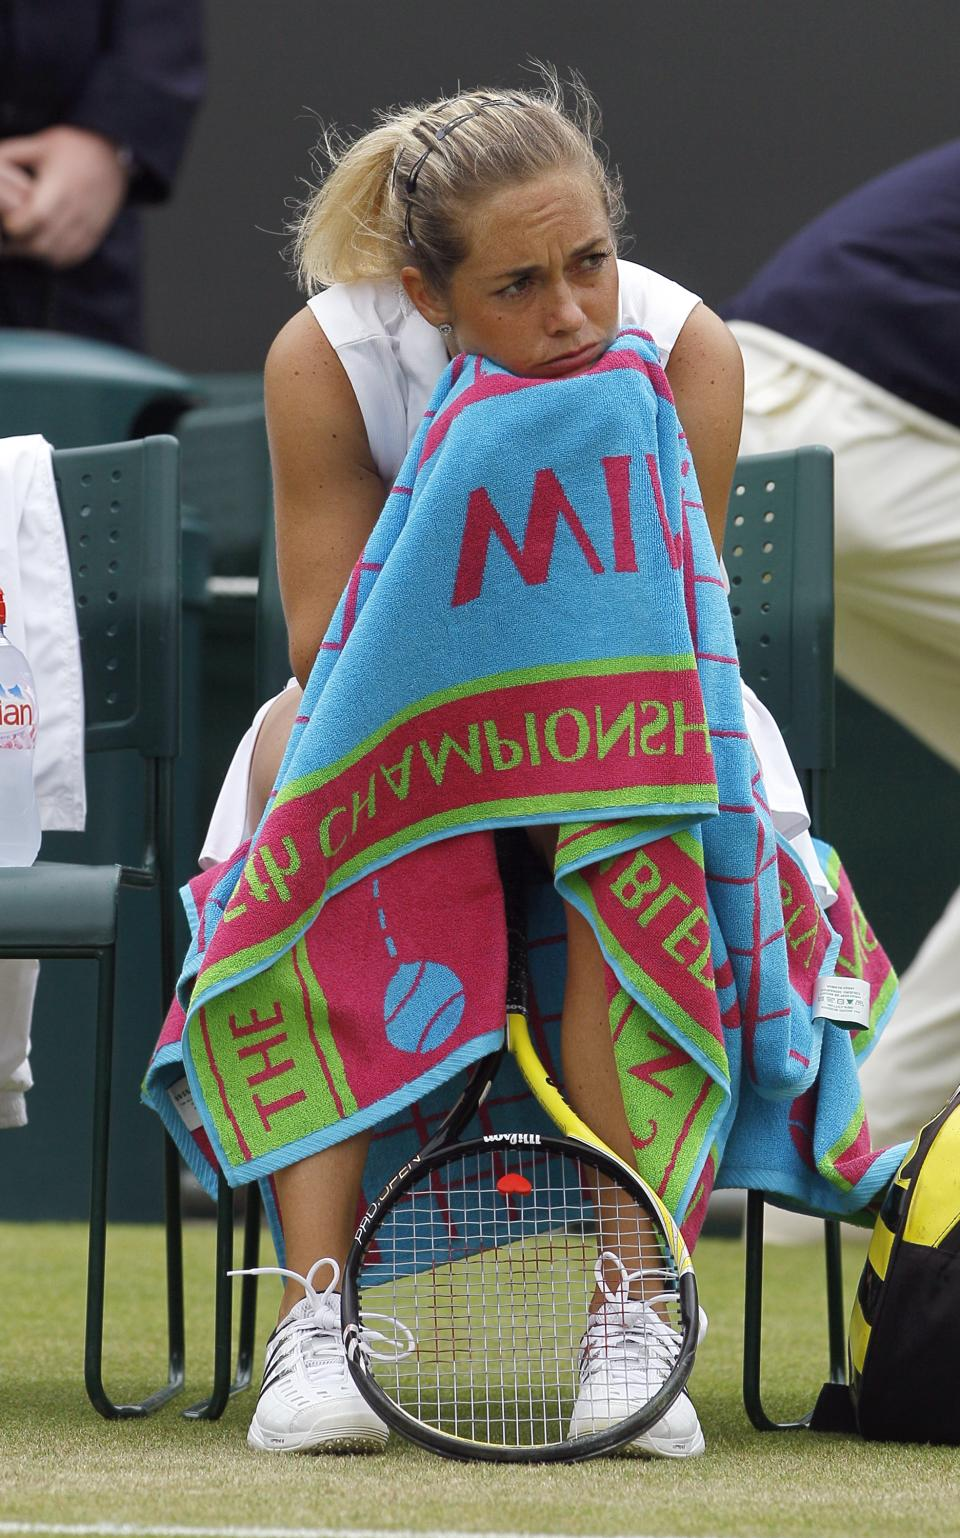 Klara Zakopalova of the Czech Republic looks dejected after being defeated by Russia's Maria Sharapova in their match at the All England Lawn Tennis Championships at Wimbledon, Saturday, June 25, 2011. (AP Photo/Kirsty Wigglesworth)